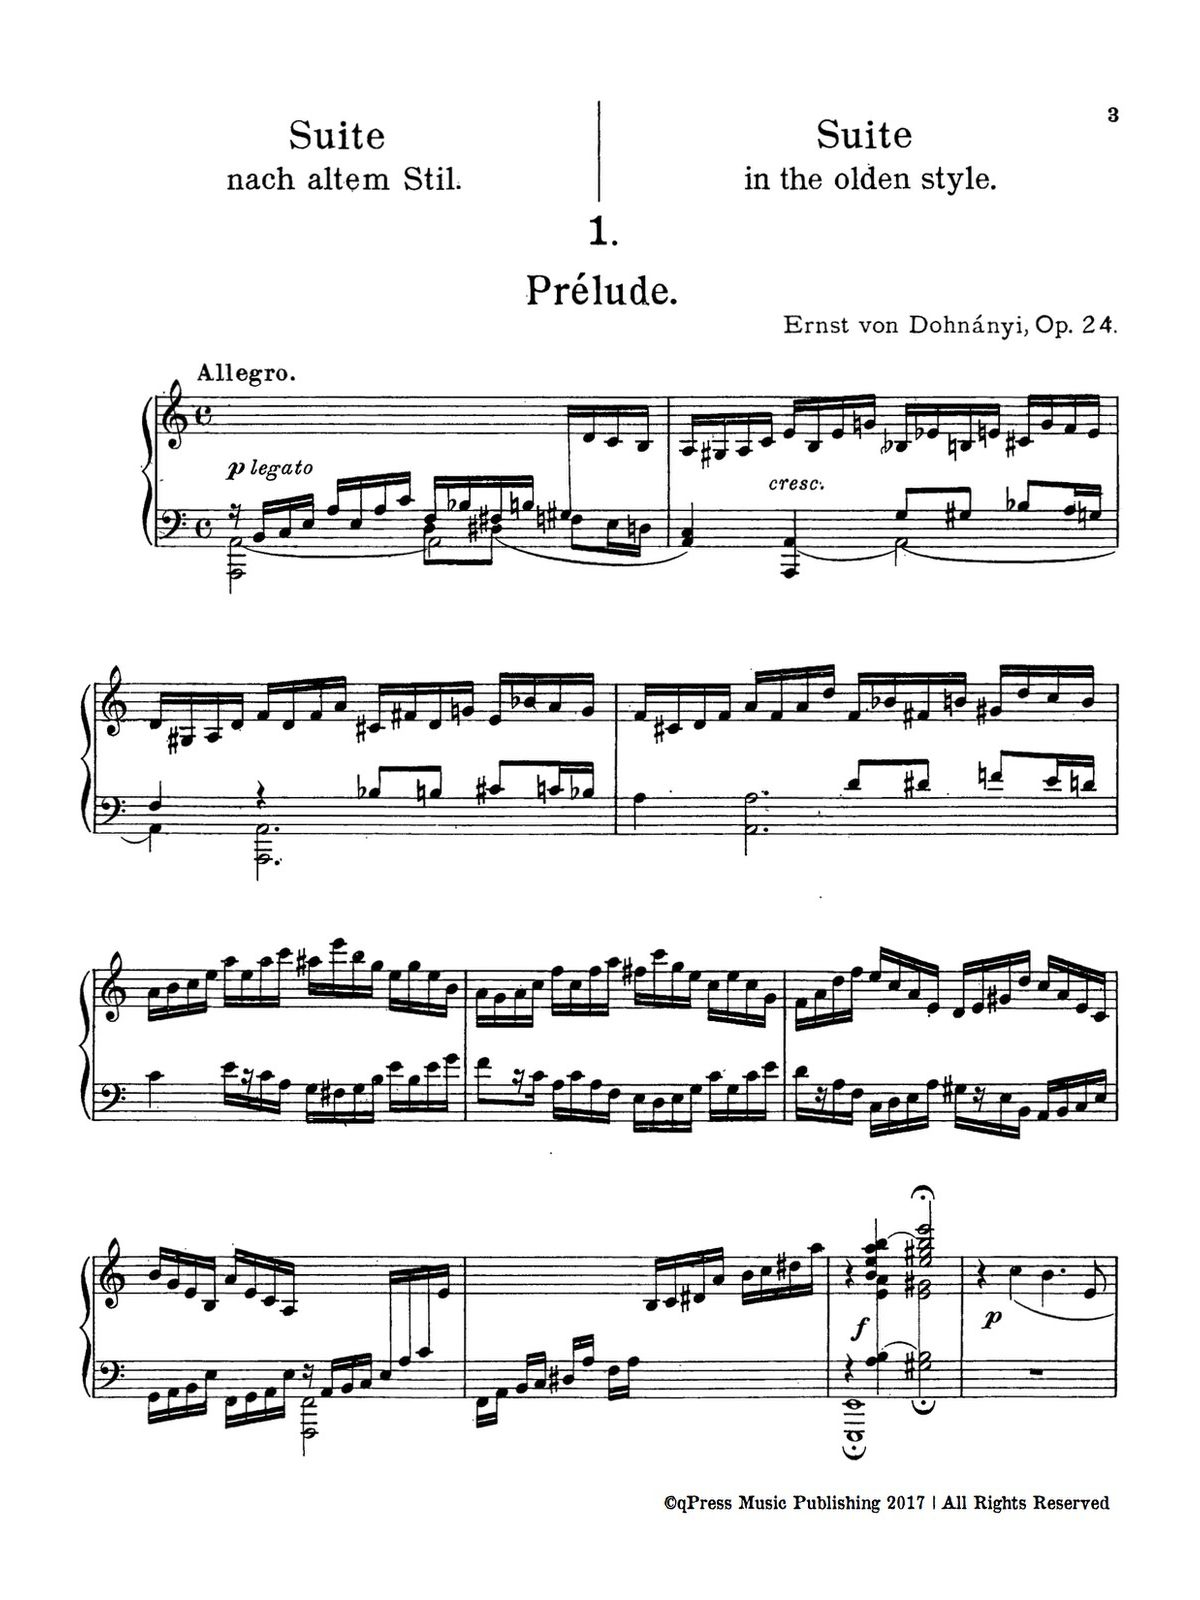 Dohnanyi, Suite in the Olden Style, Op.24-p03